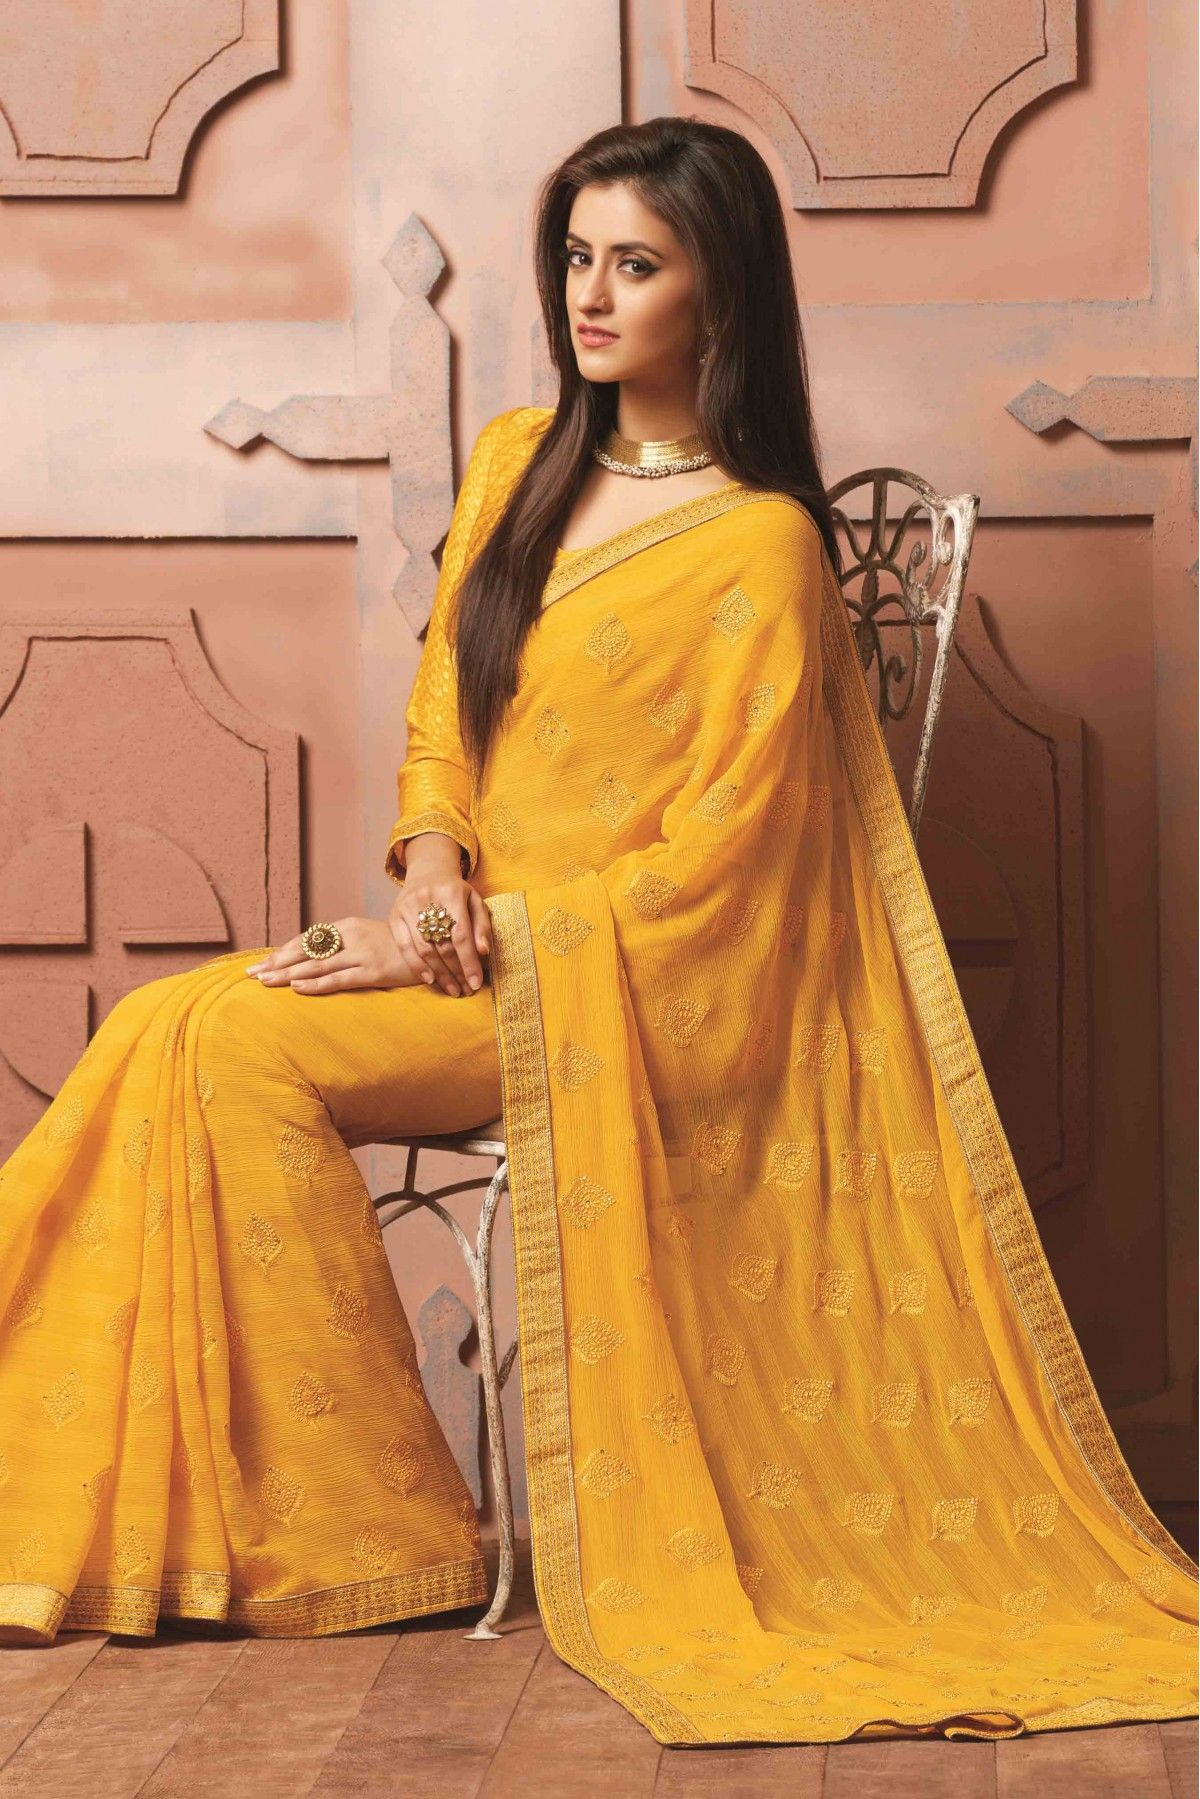 e6e6db79b9 Yellow Colour Wrinkle Chiffon Fabric Party Wear Designer Saree Comes With  Matching Blouse. This Saree Is Crafted With Embroidery,Lace Work.